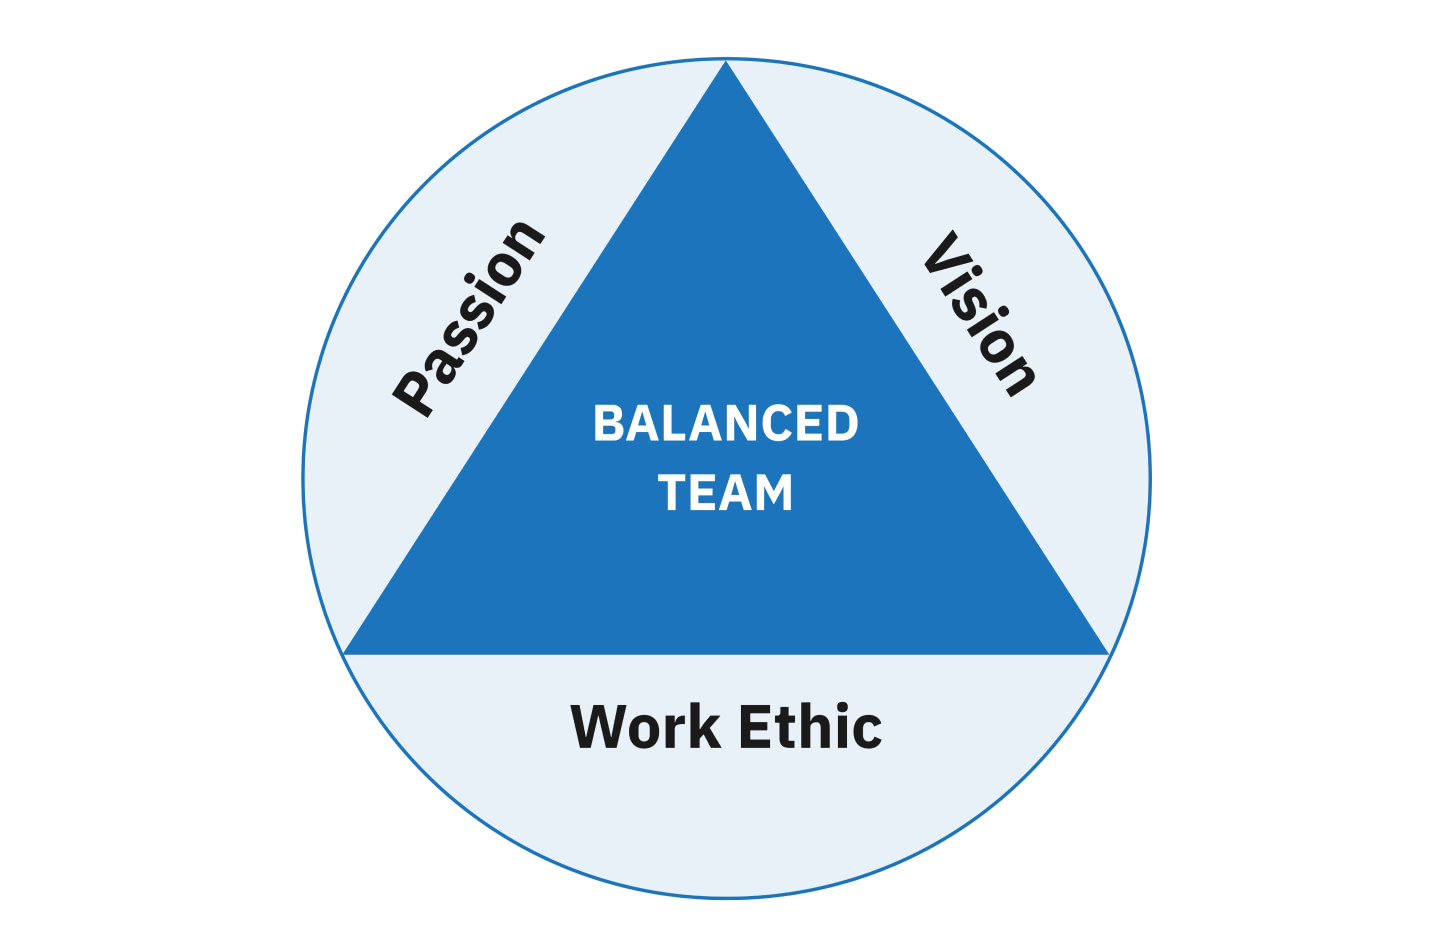 A shared passion, vision, and work ethic is essential to build and maintain optimal team performance